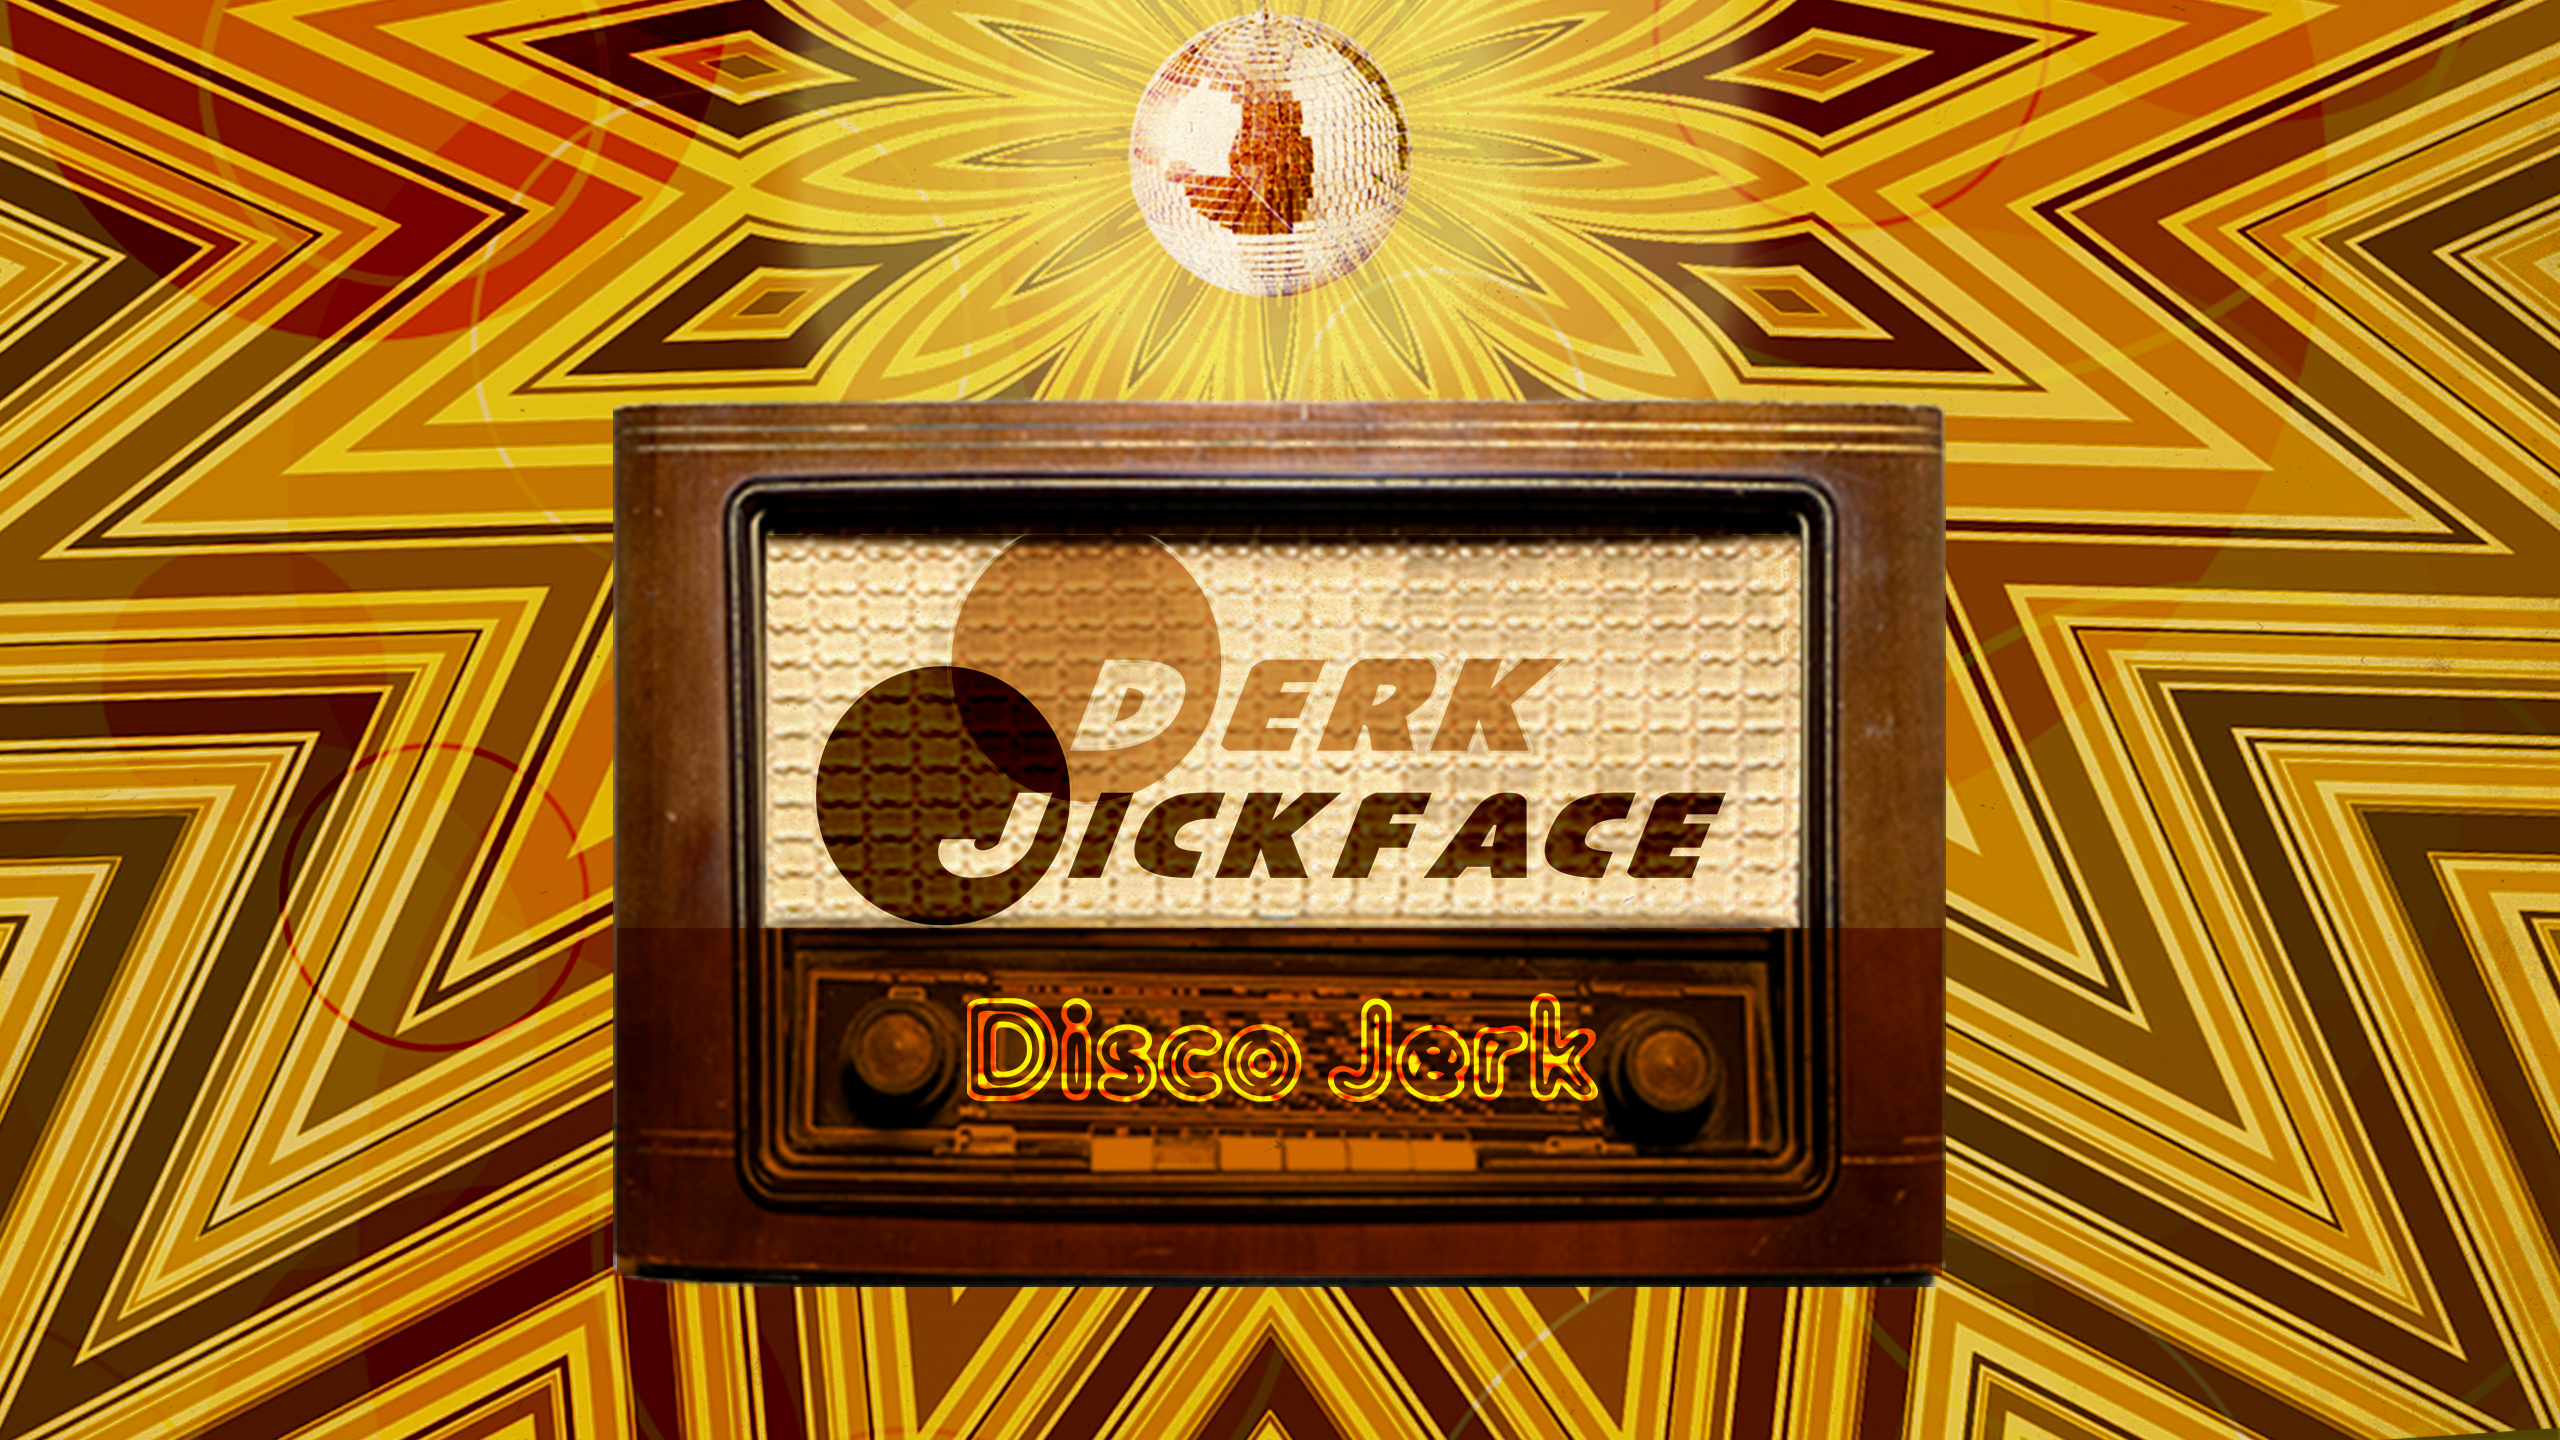 Pic - Disco Jerk Radio